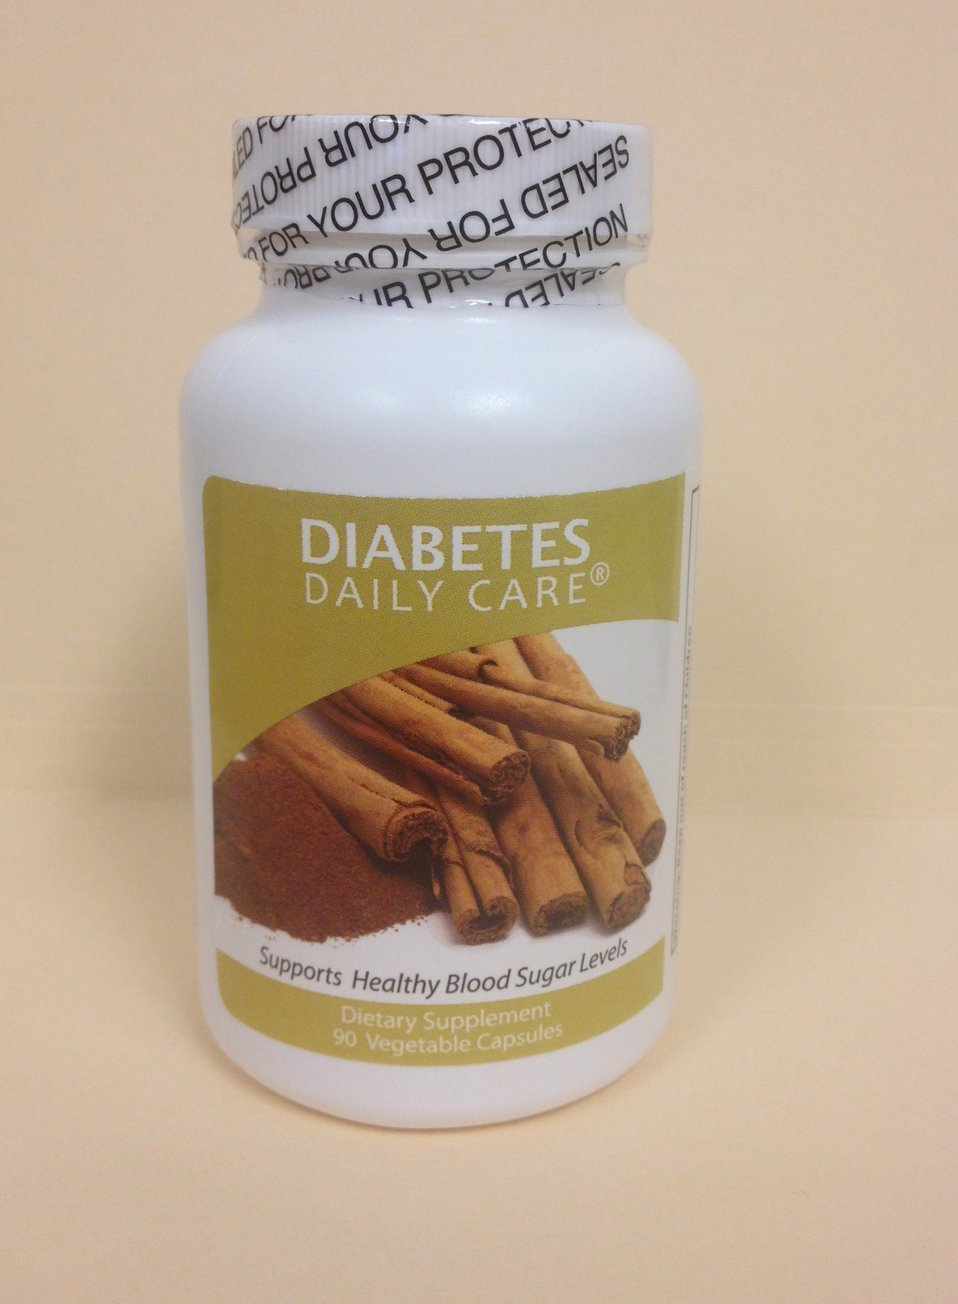 Illegally Sold Diabetes Treatments - Diabetes Daily Care